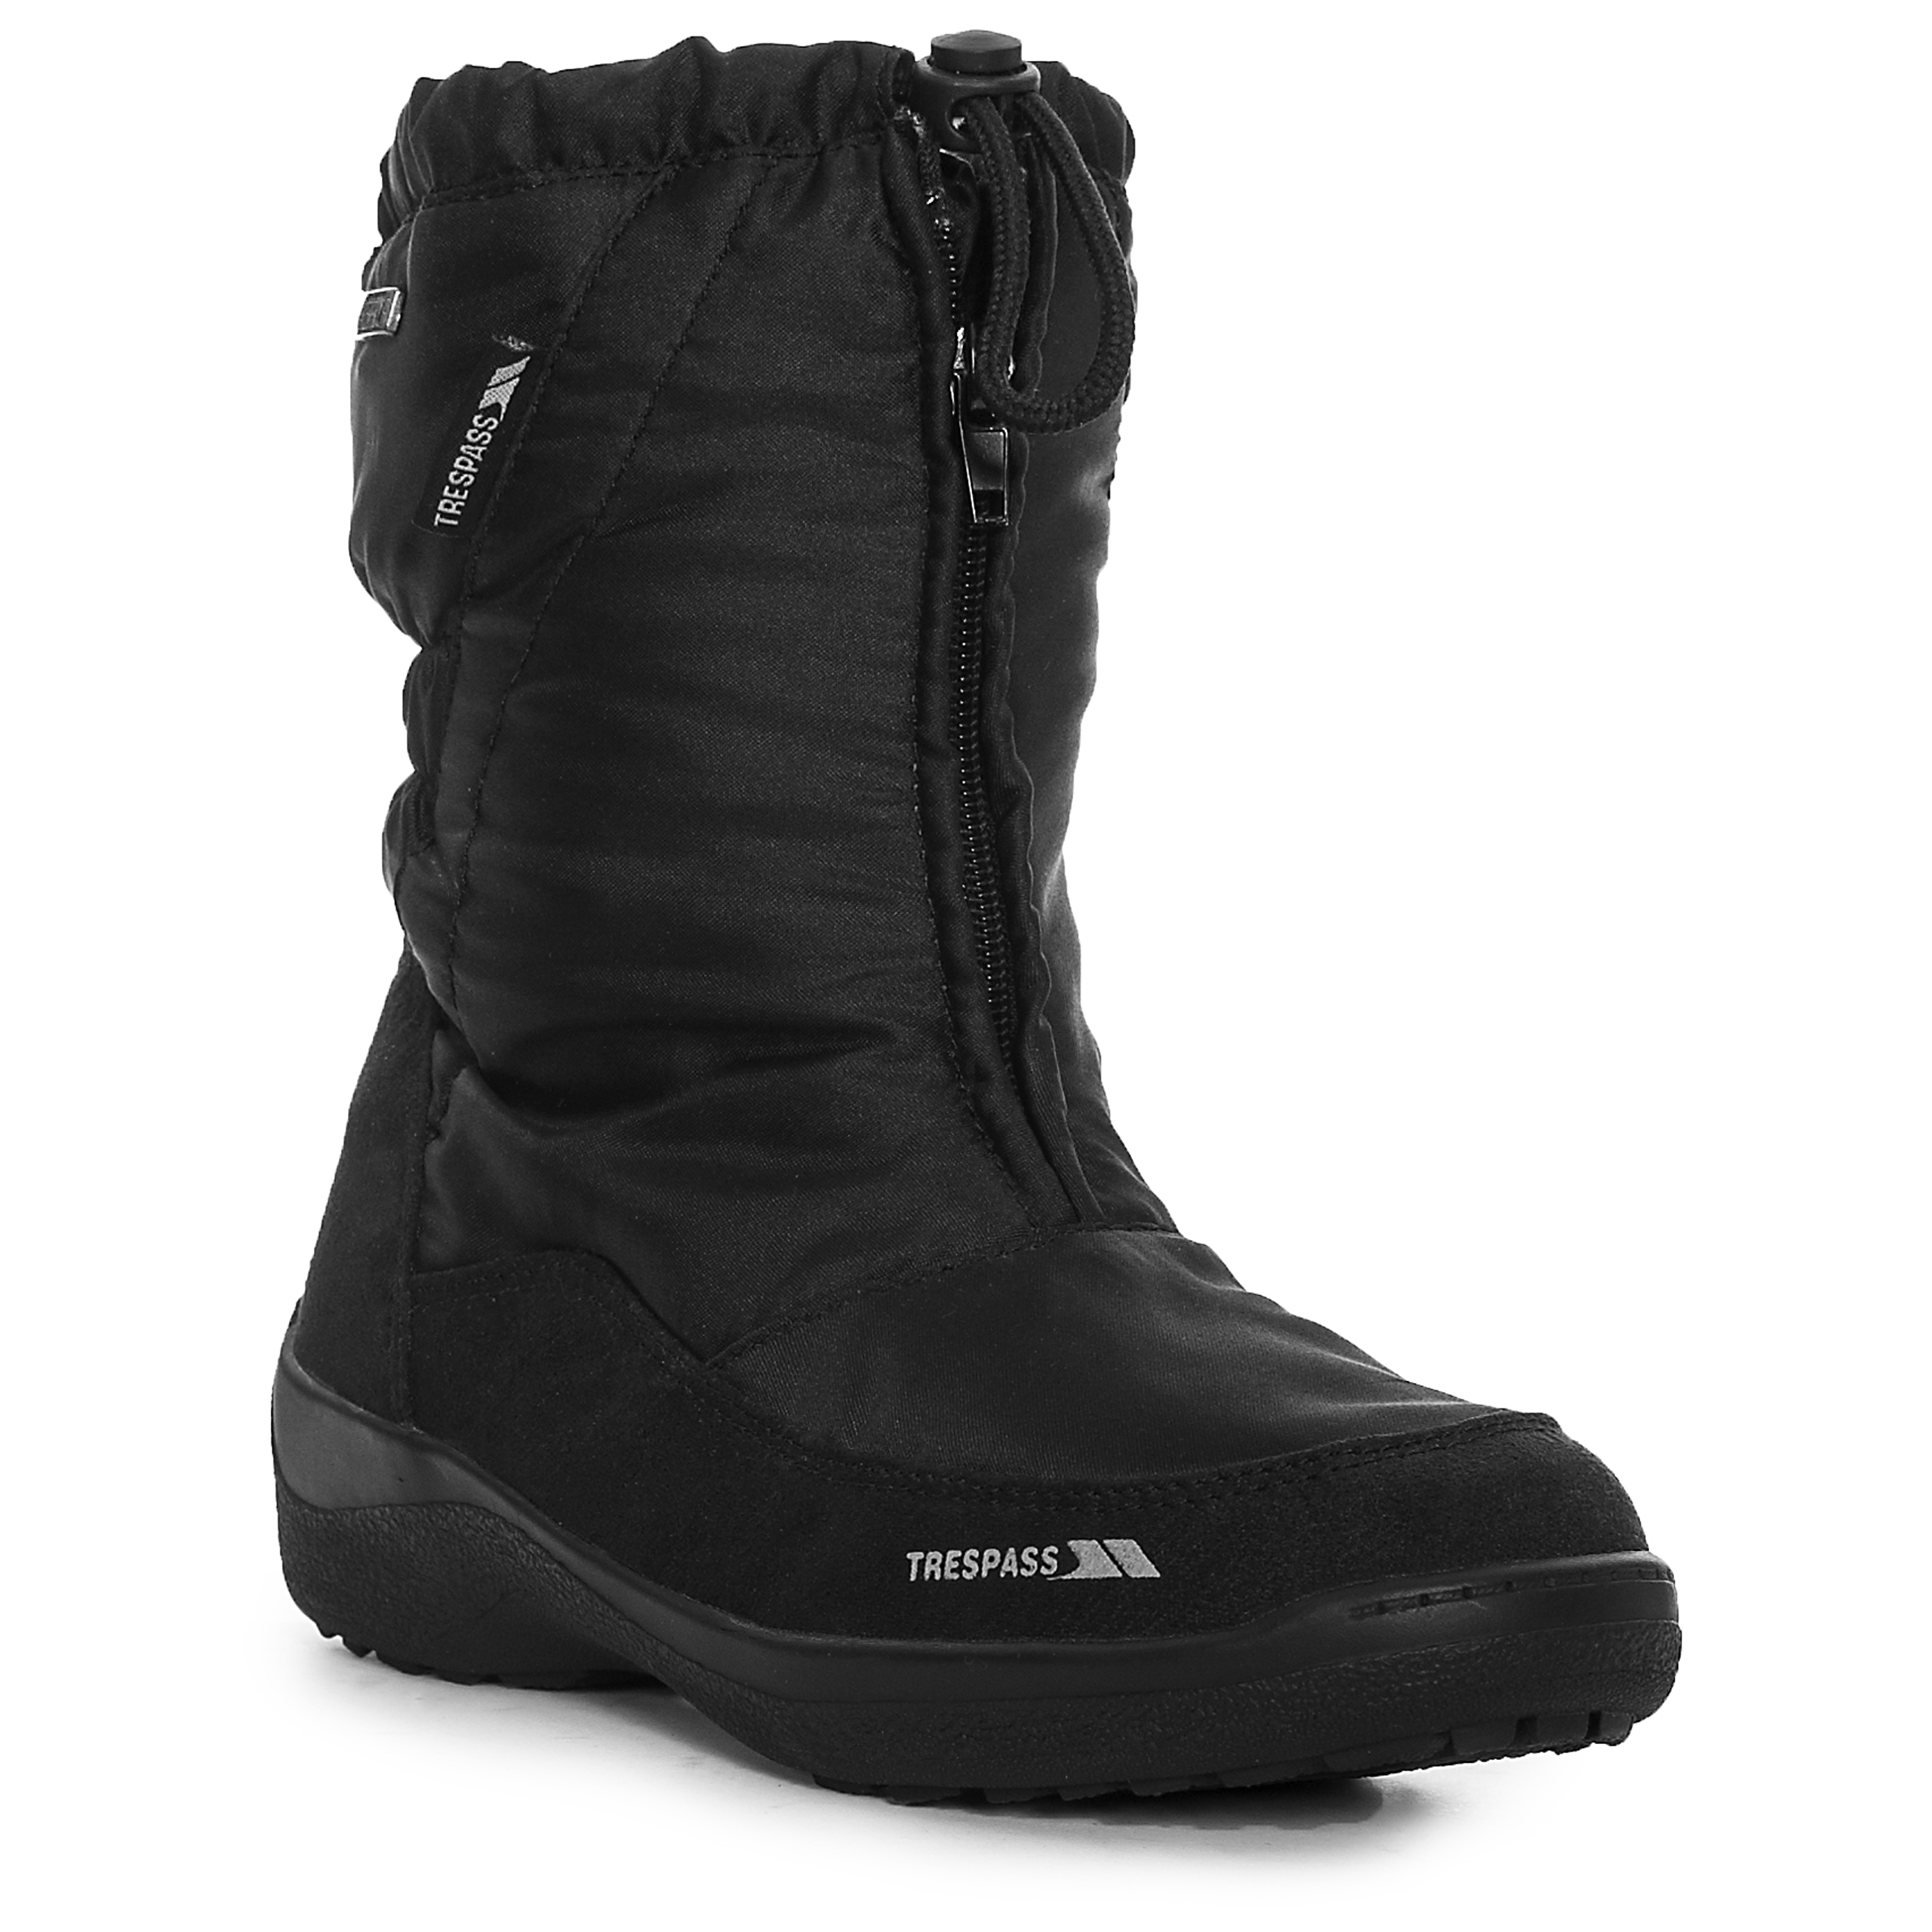 Original LadiesSnowBootNylonTallWinterWaterproofFurLinedWarmRainBoot